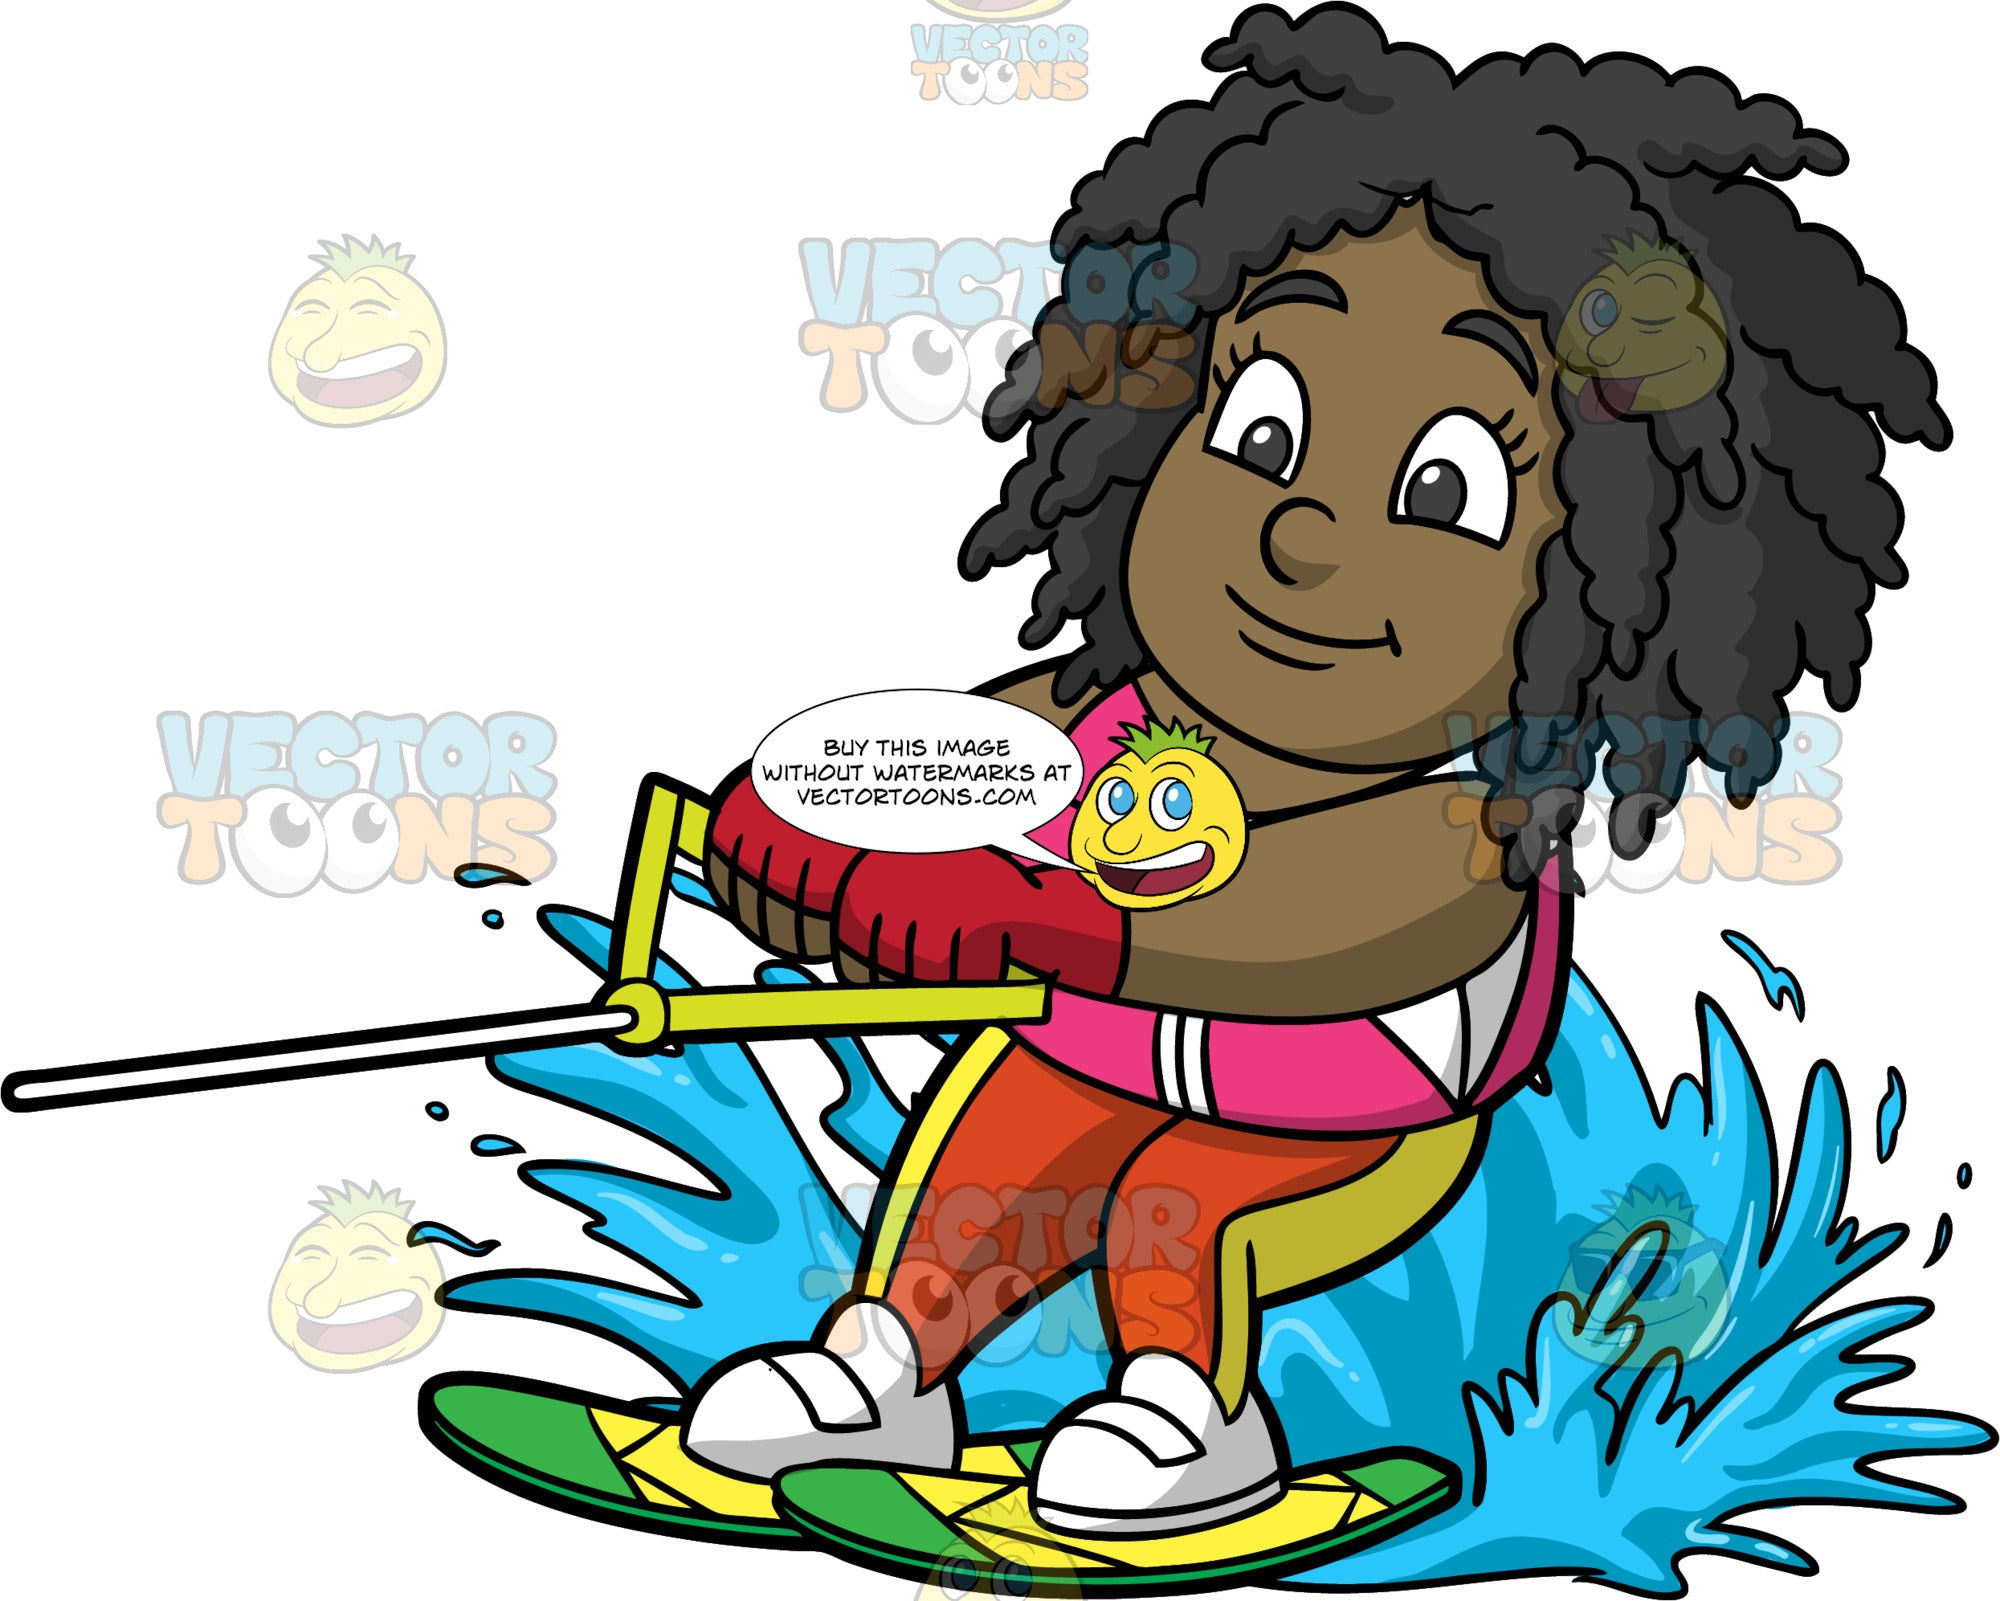 Young Lisa Water Skiing. A young black girl wearing an orange and yellow wet suit, and a pink life vest, holds onto a handle as she skis behind a boat